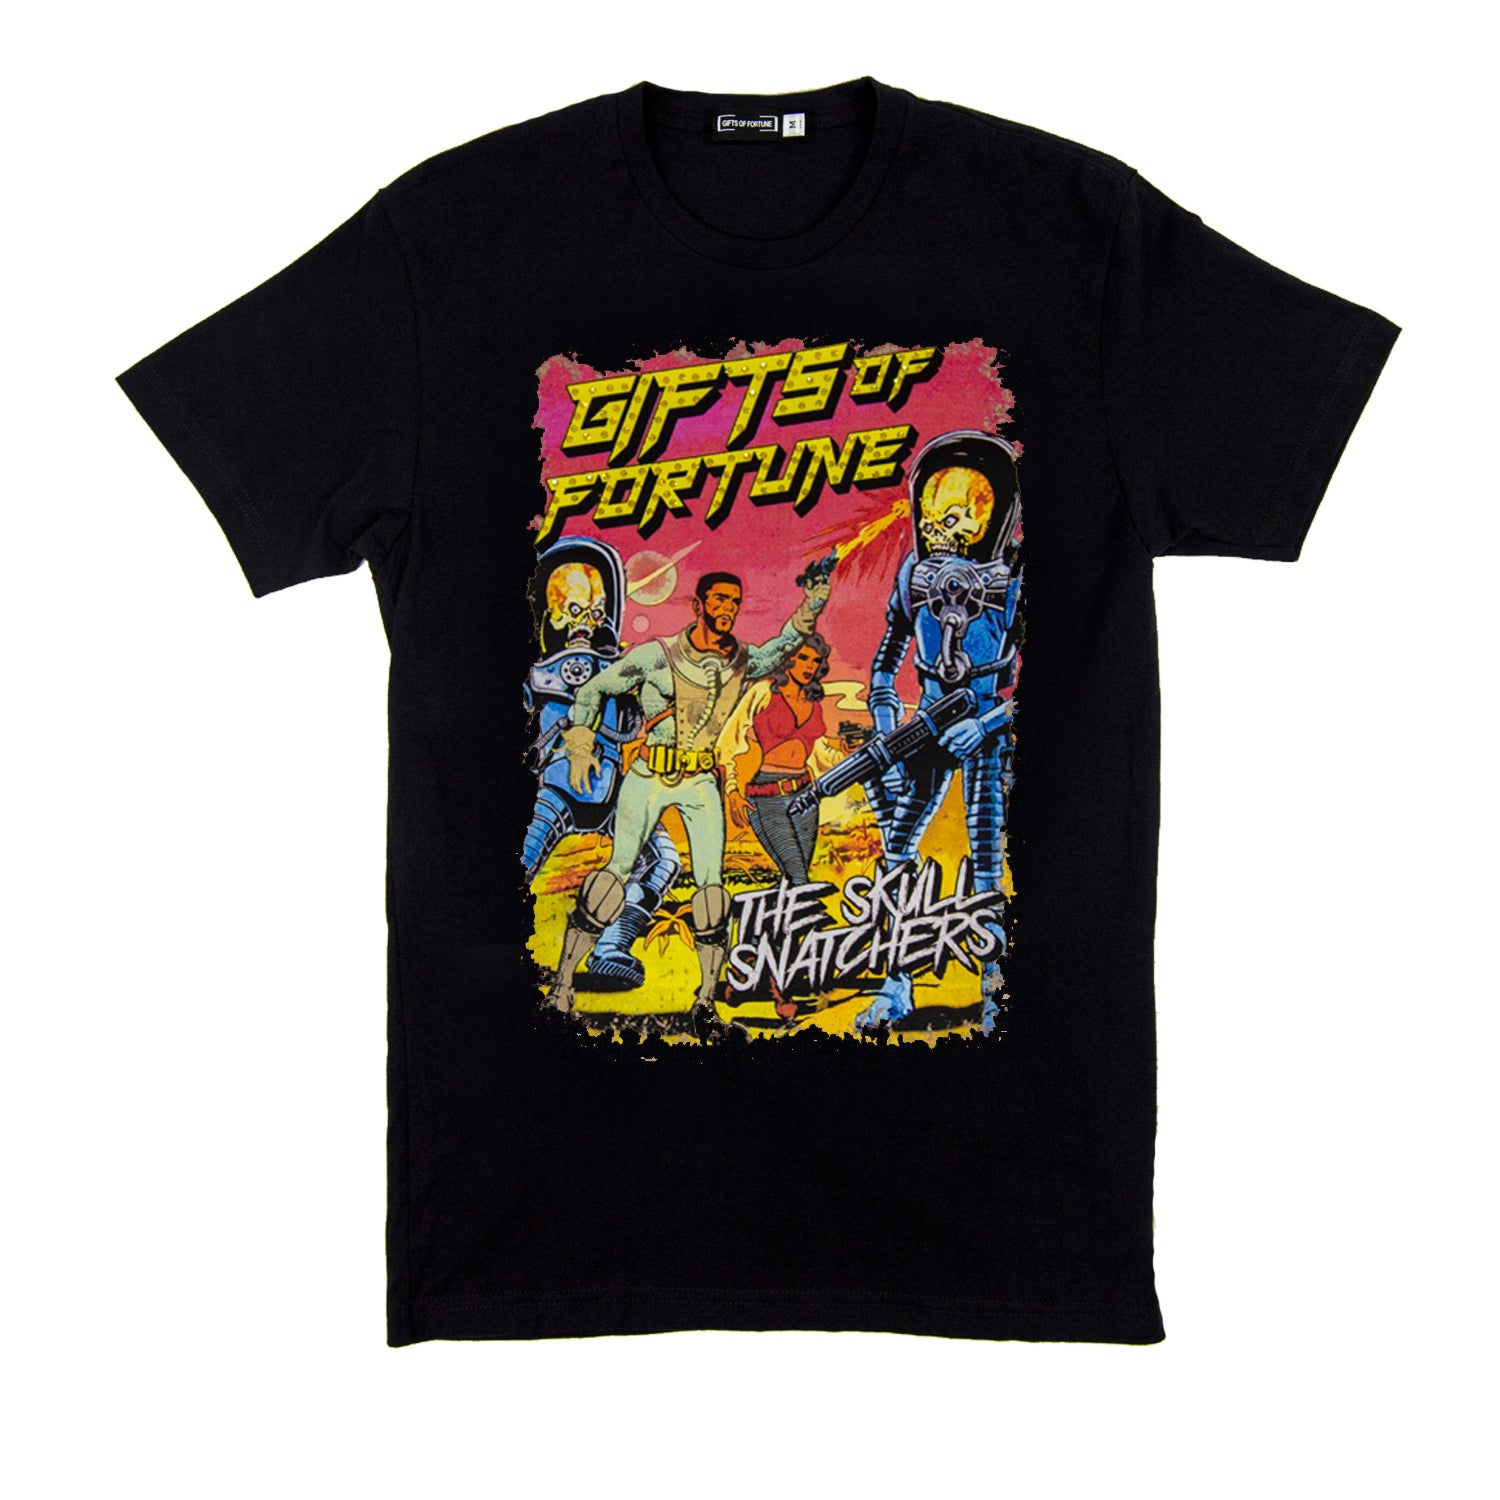 Black Fight Back T-shirt - Gifts of Fortune